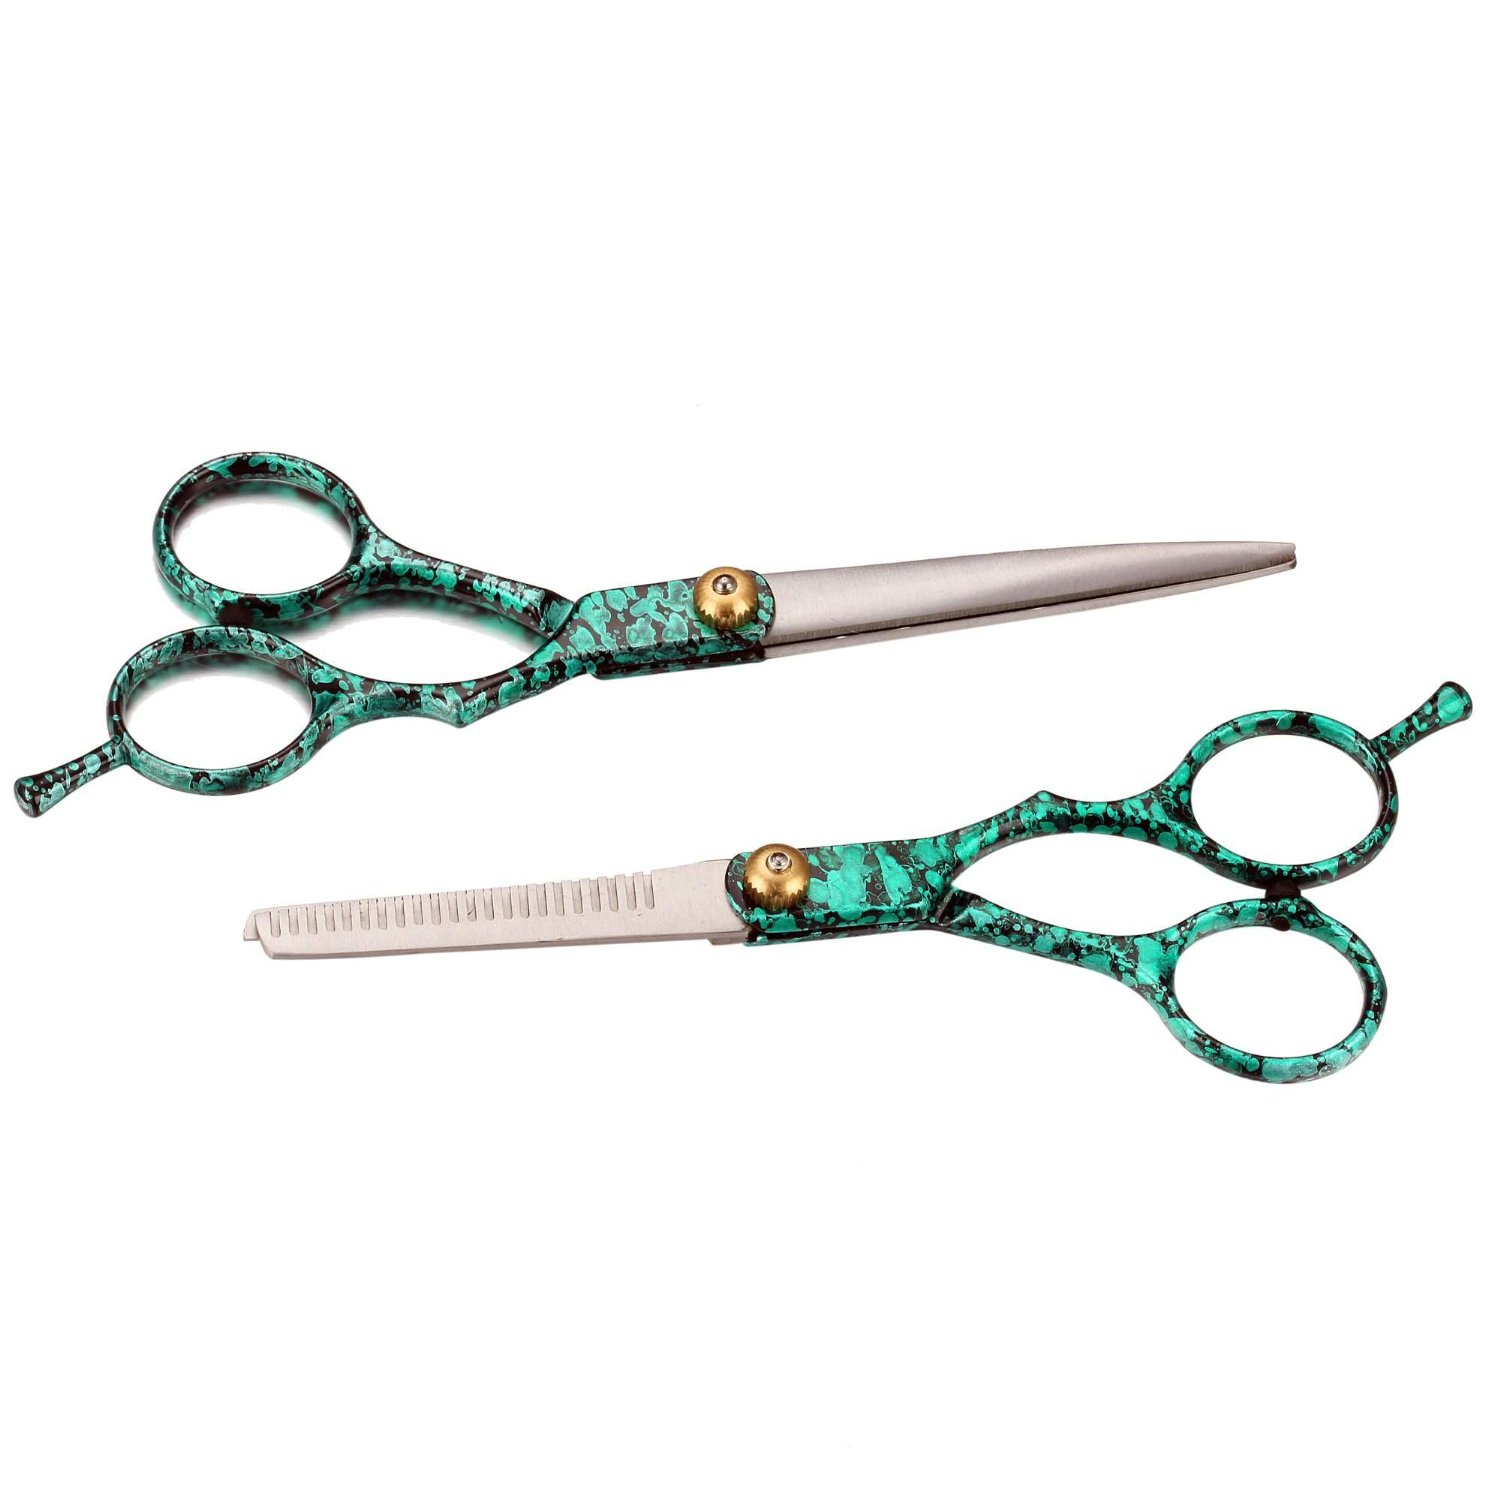 Professional Hairdressing Cutting Thinning Stainless Steel Scissors 2PCs Set Green